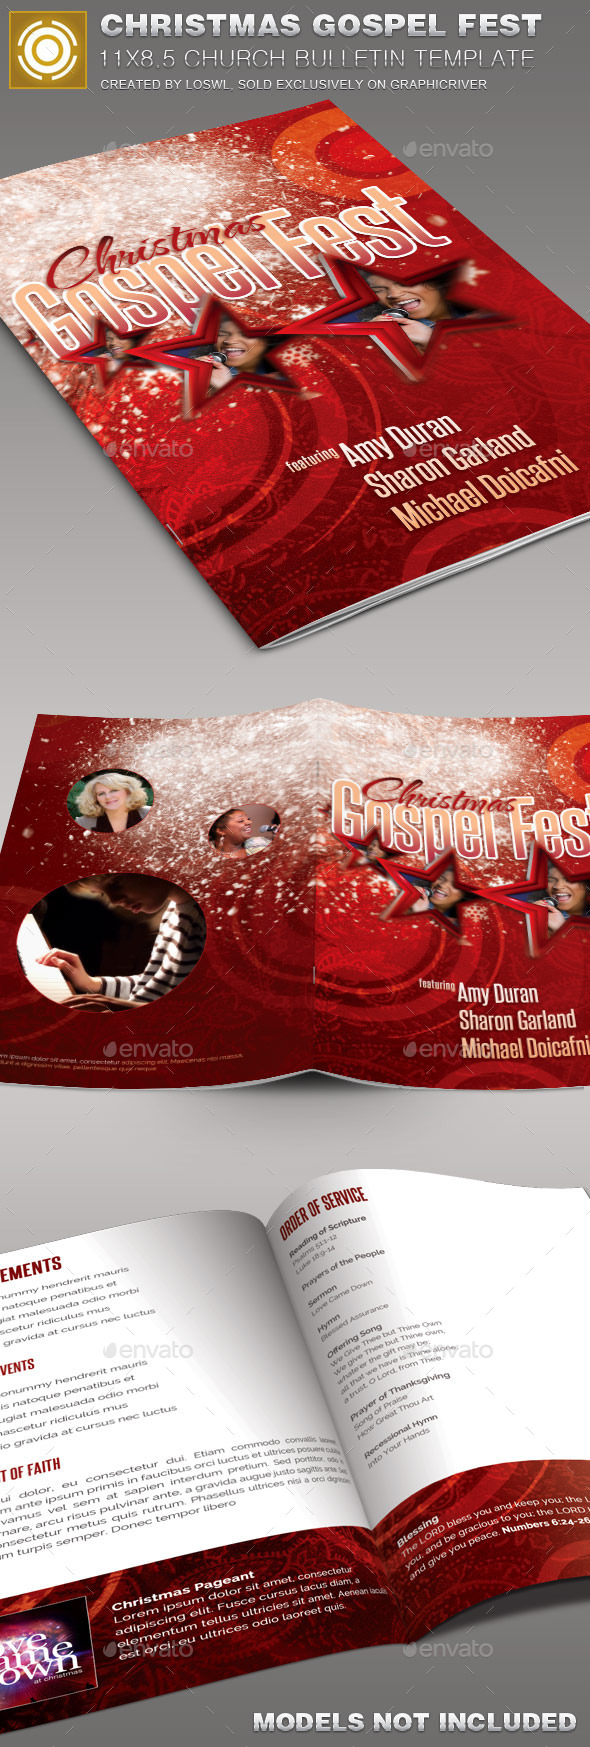 Christmas  Gospel Fest Church Bulletin Template - Informational Brochures